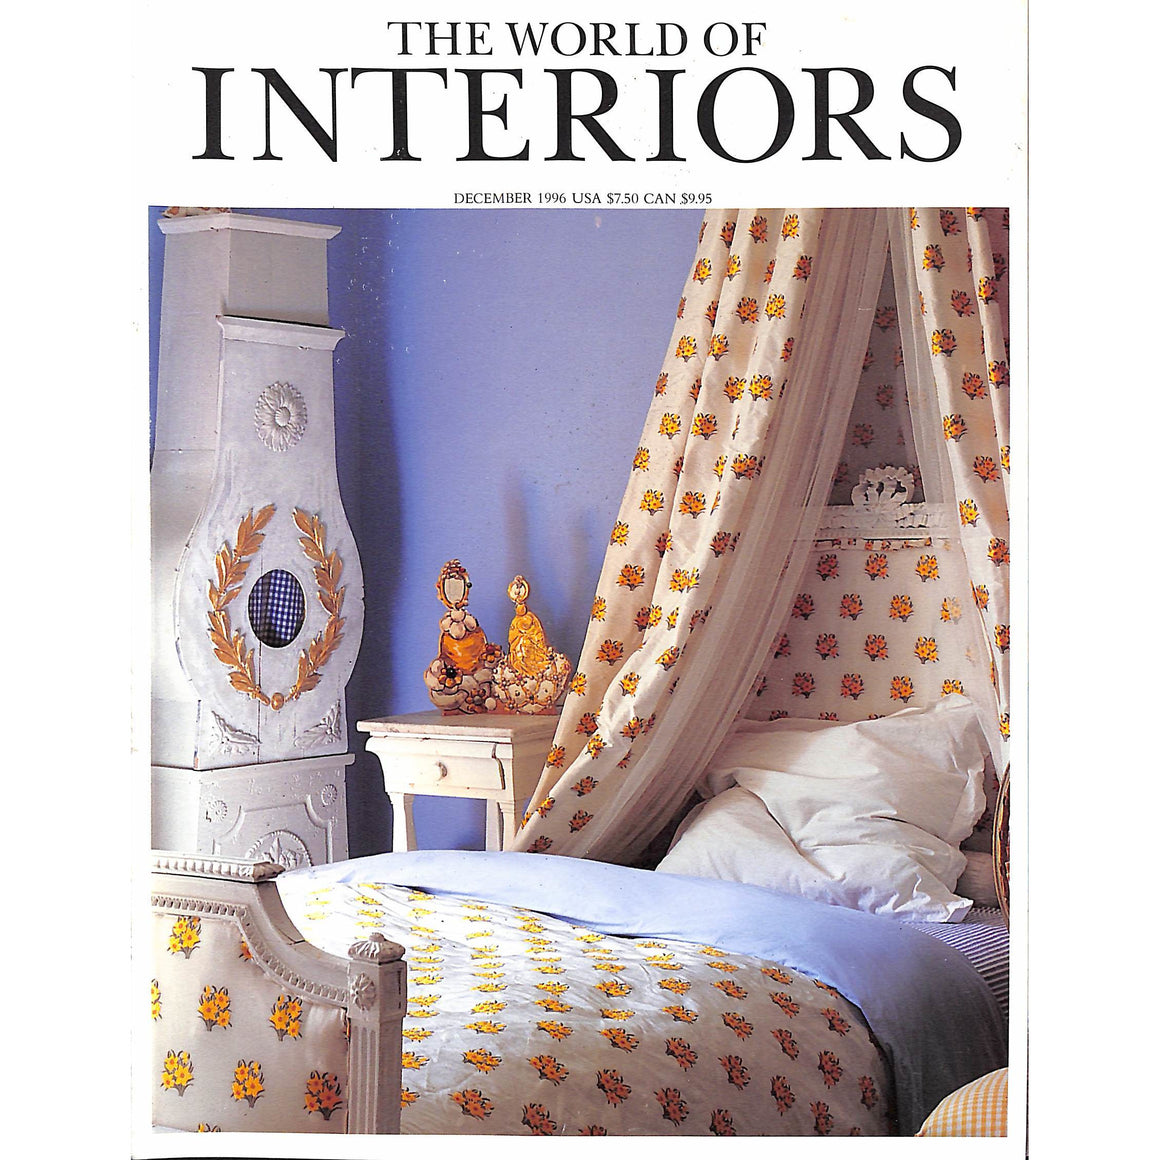 The World of Interiors December 1996